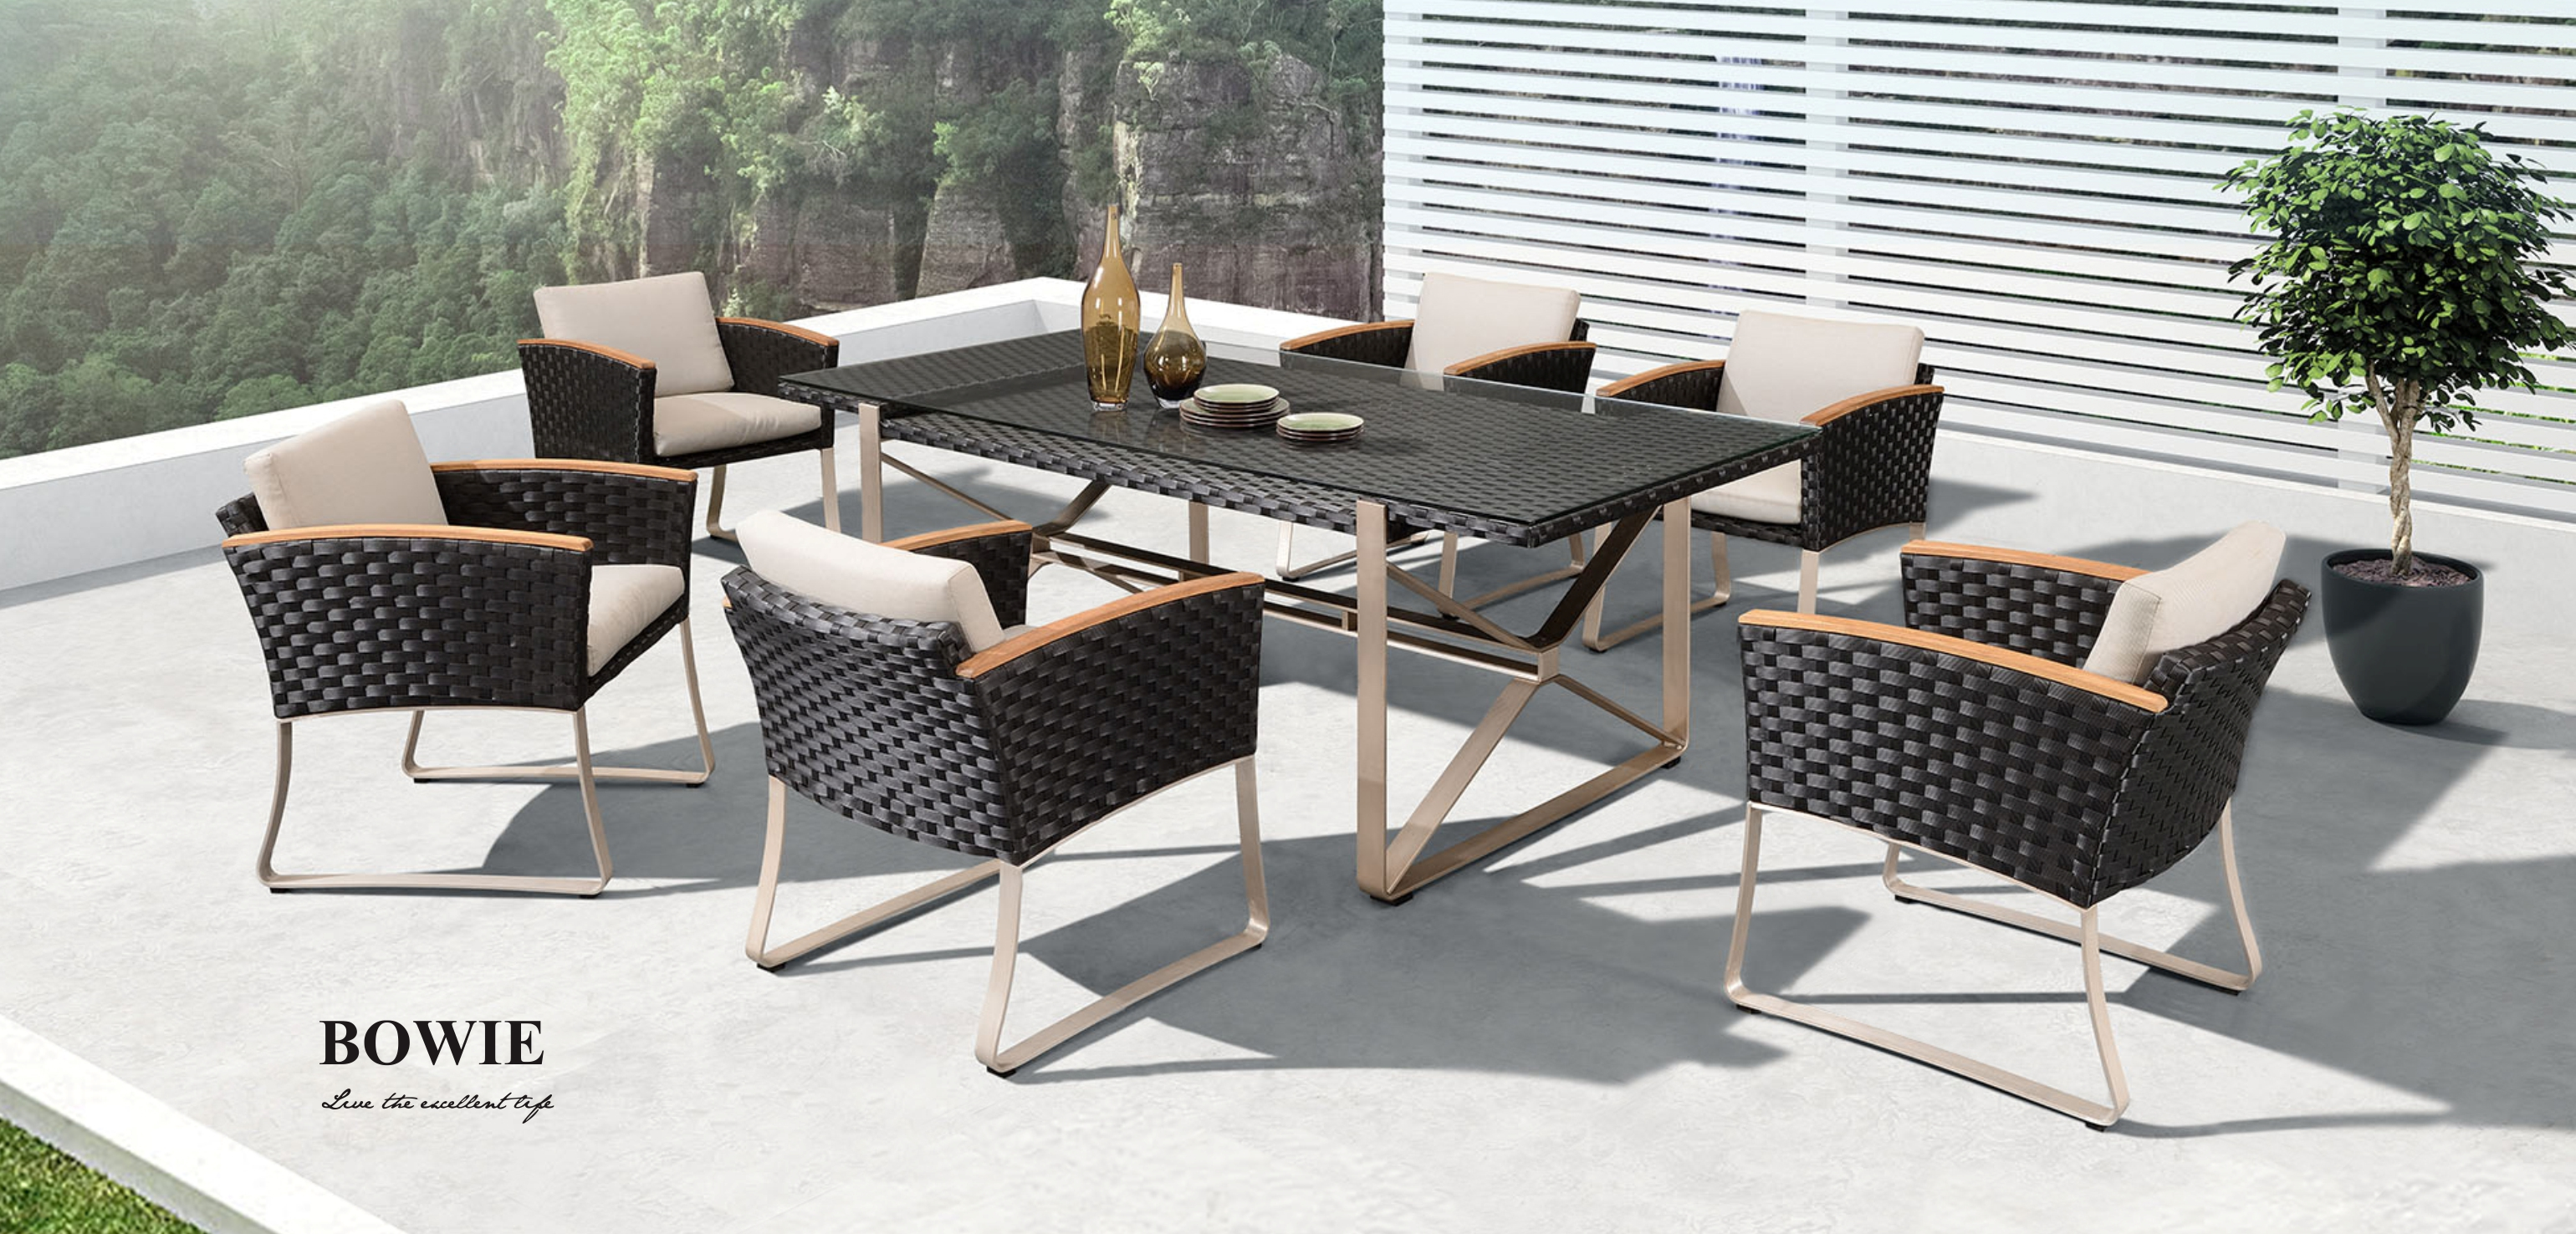 Bowie Dining Set 203960